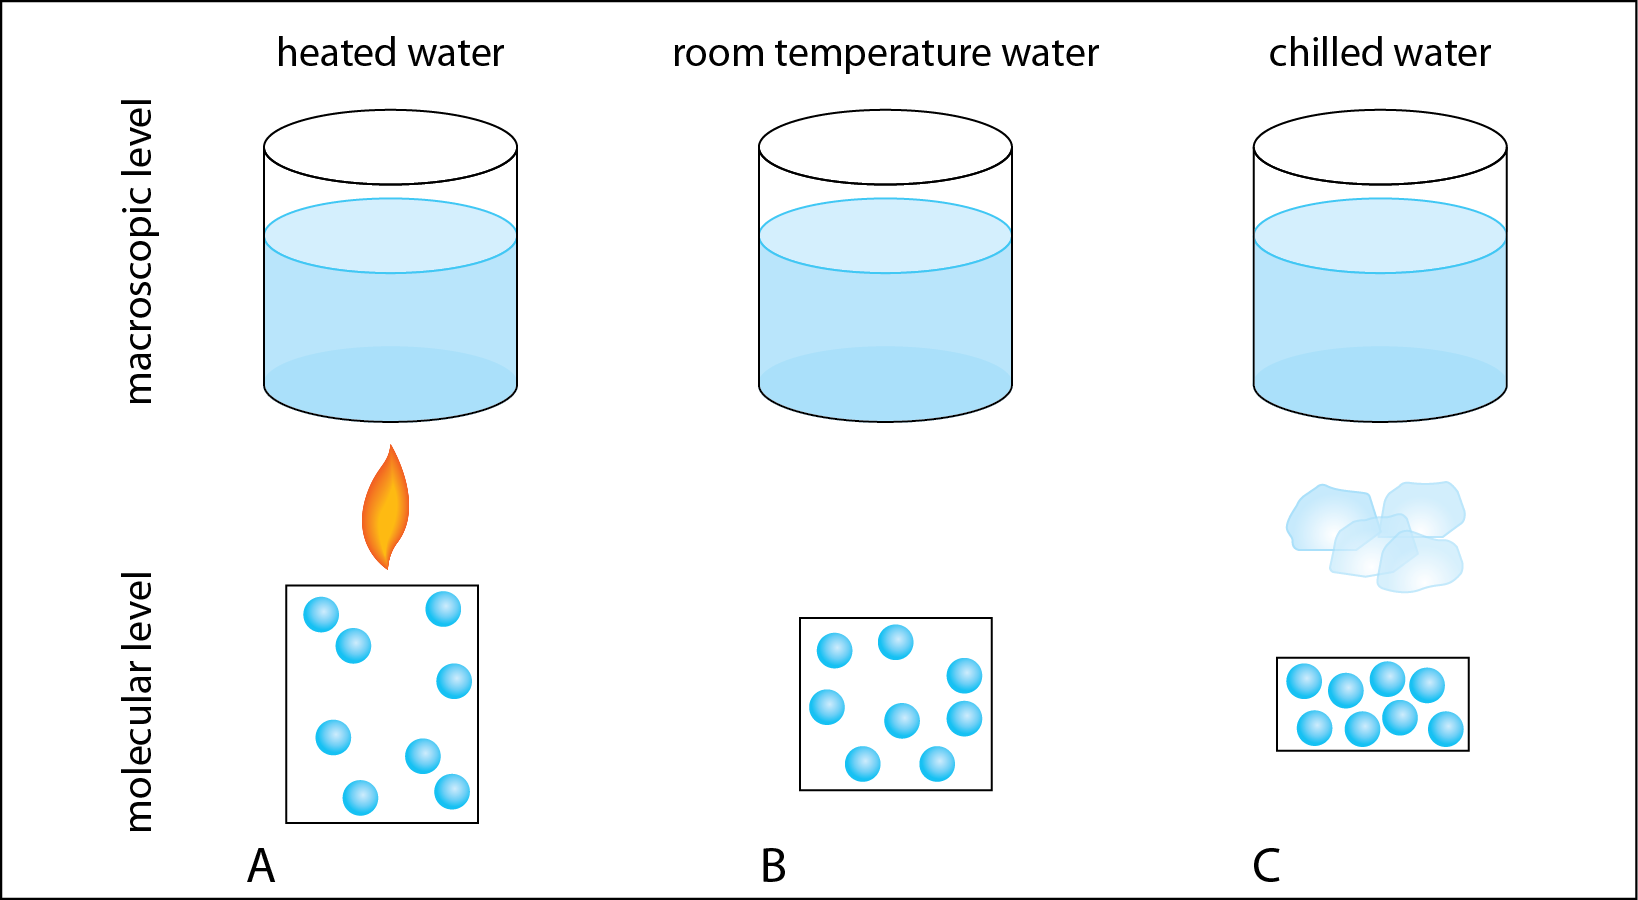 "<p><strong>SF Fig. 2.1.</strong>&nbsp;<span style=""line-height: 1.538em;"">Heating and cooling water at the macroscopic and microscopic level.</span></p>"